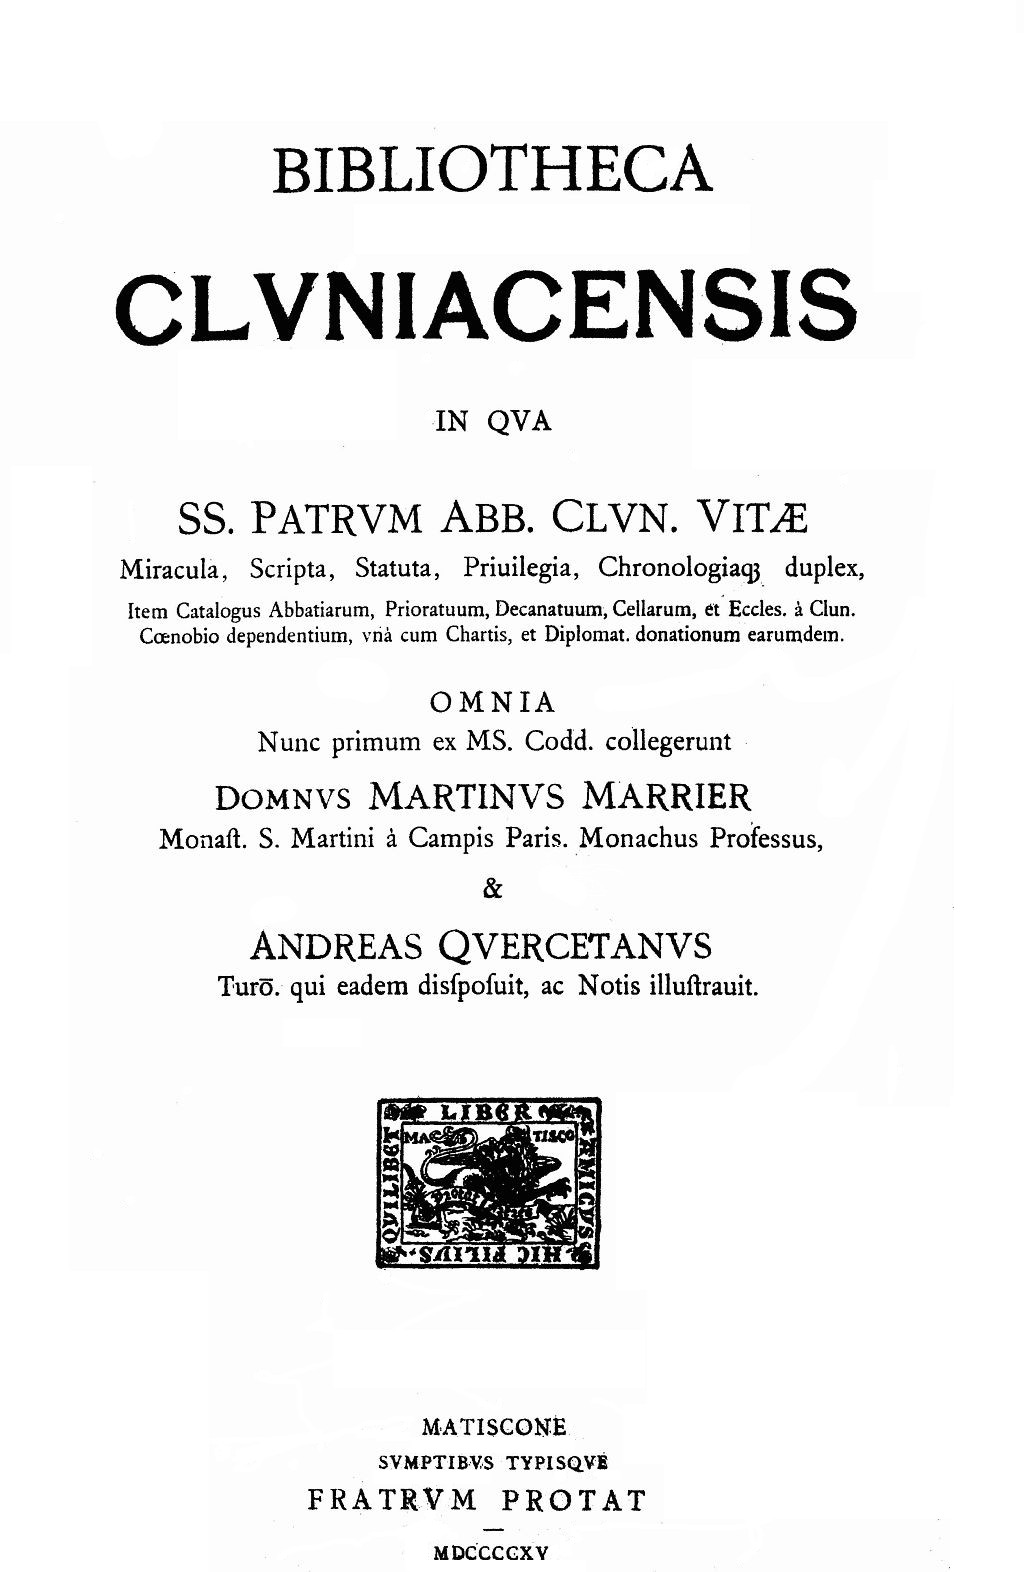 Bibliotheca cluniacensis